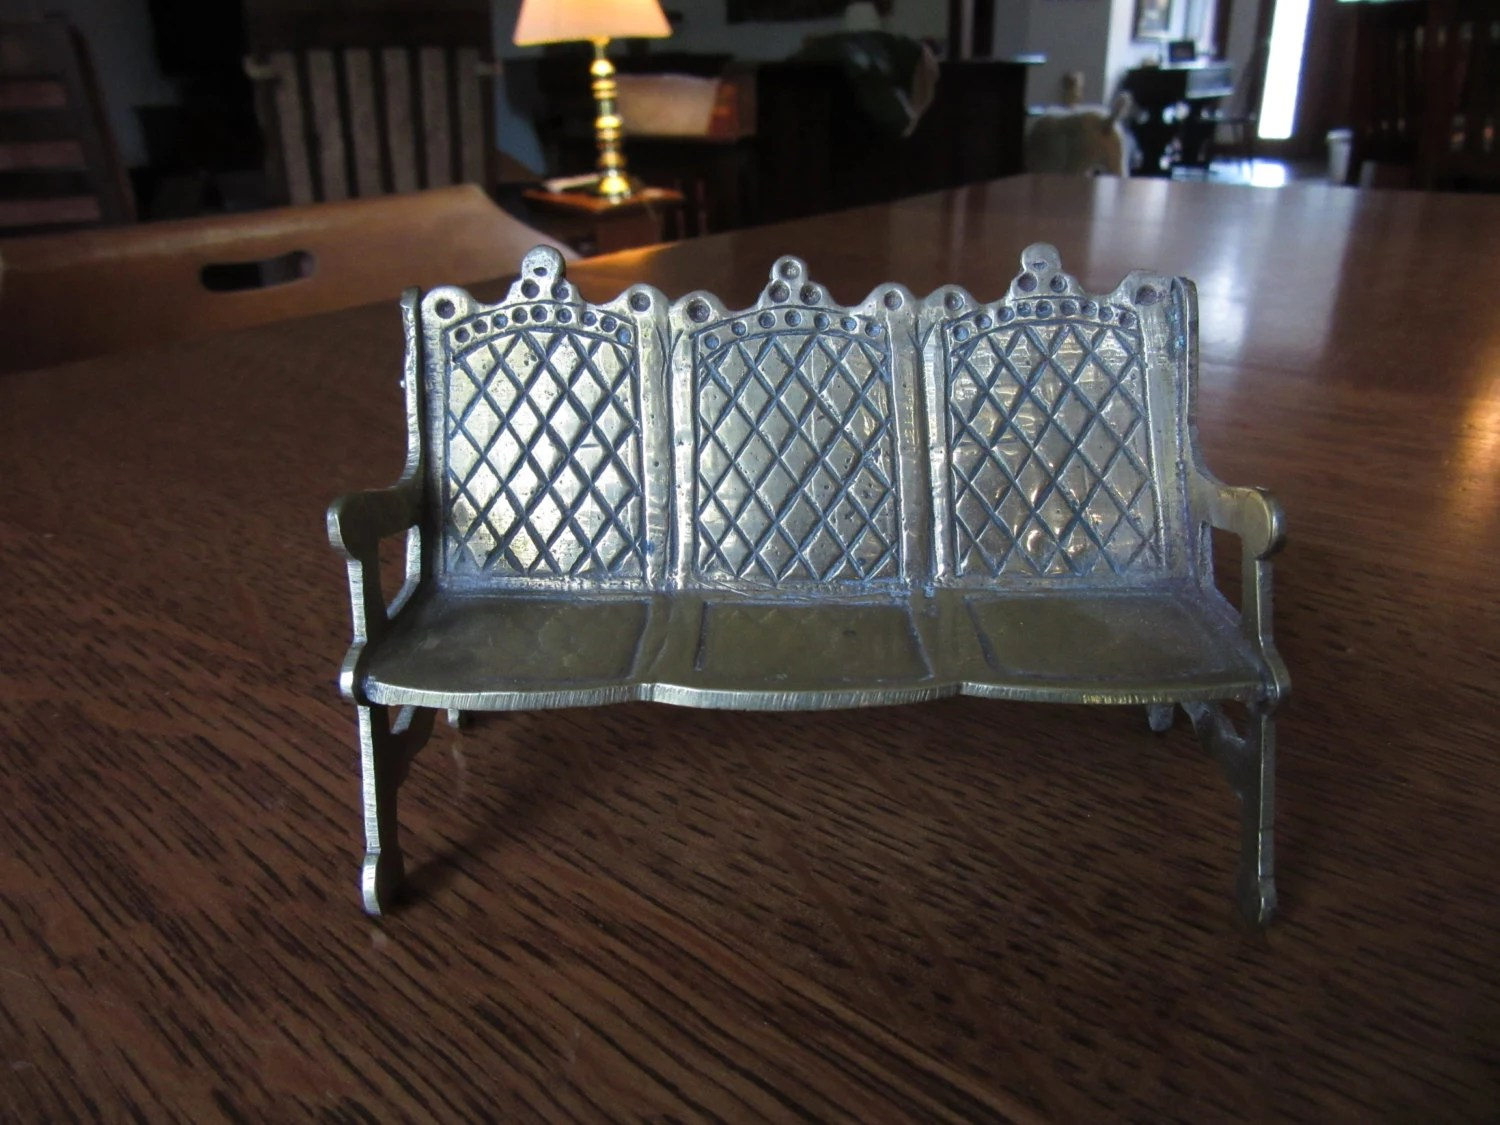 steel chair buyers in india office chairs at target vintage dollhouse brass htf bench doll house furniture